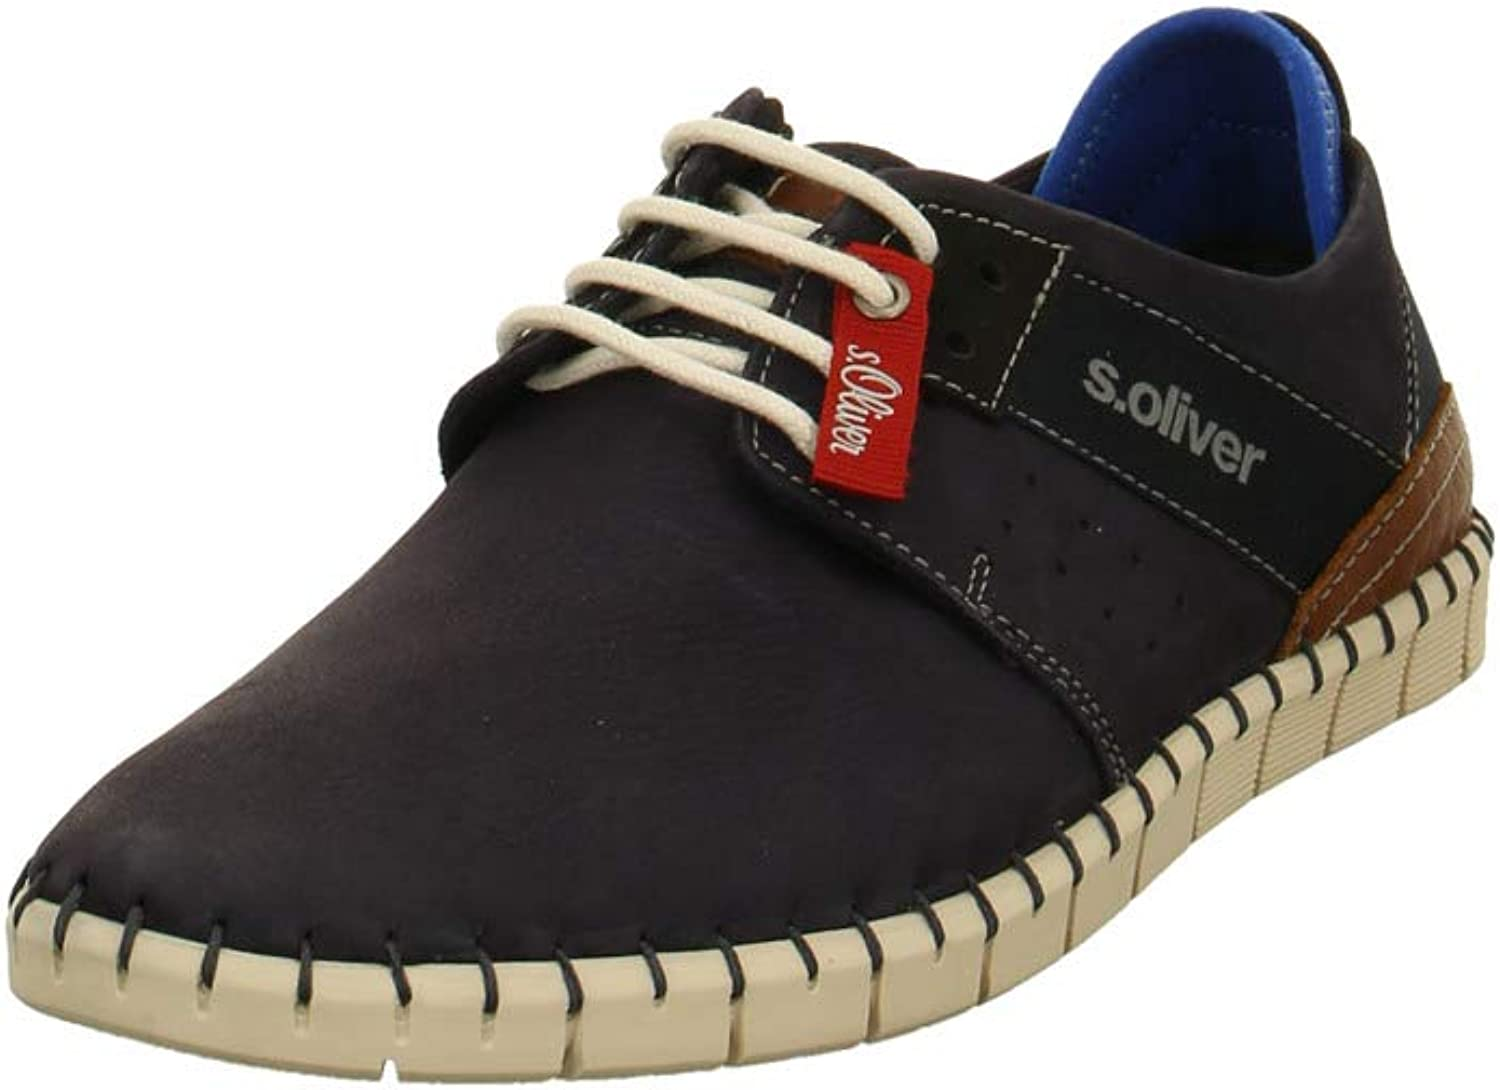 wholesale dealer 08dad ebfaa Herren 604186 blau 805 13621 Sohle Heller mit Turnschuhe ...